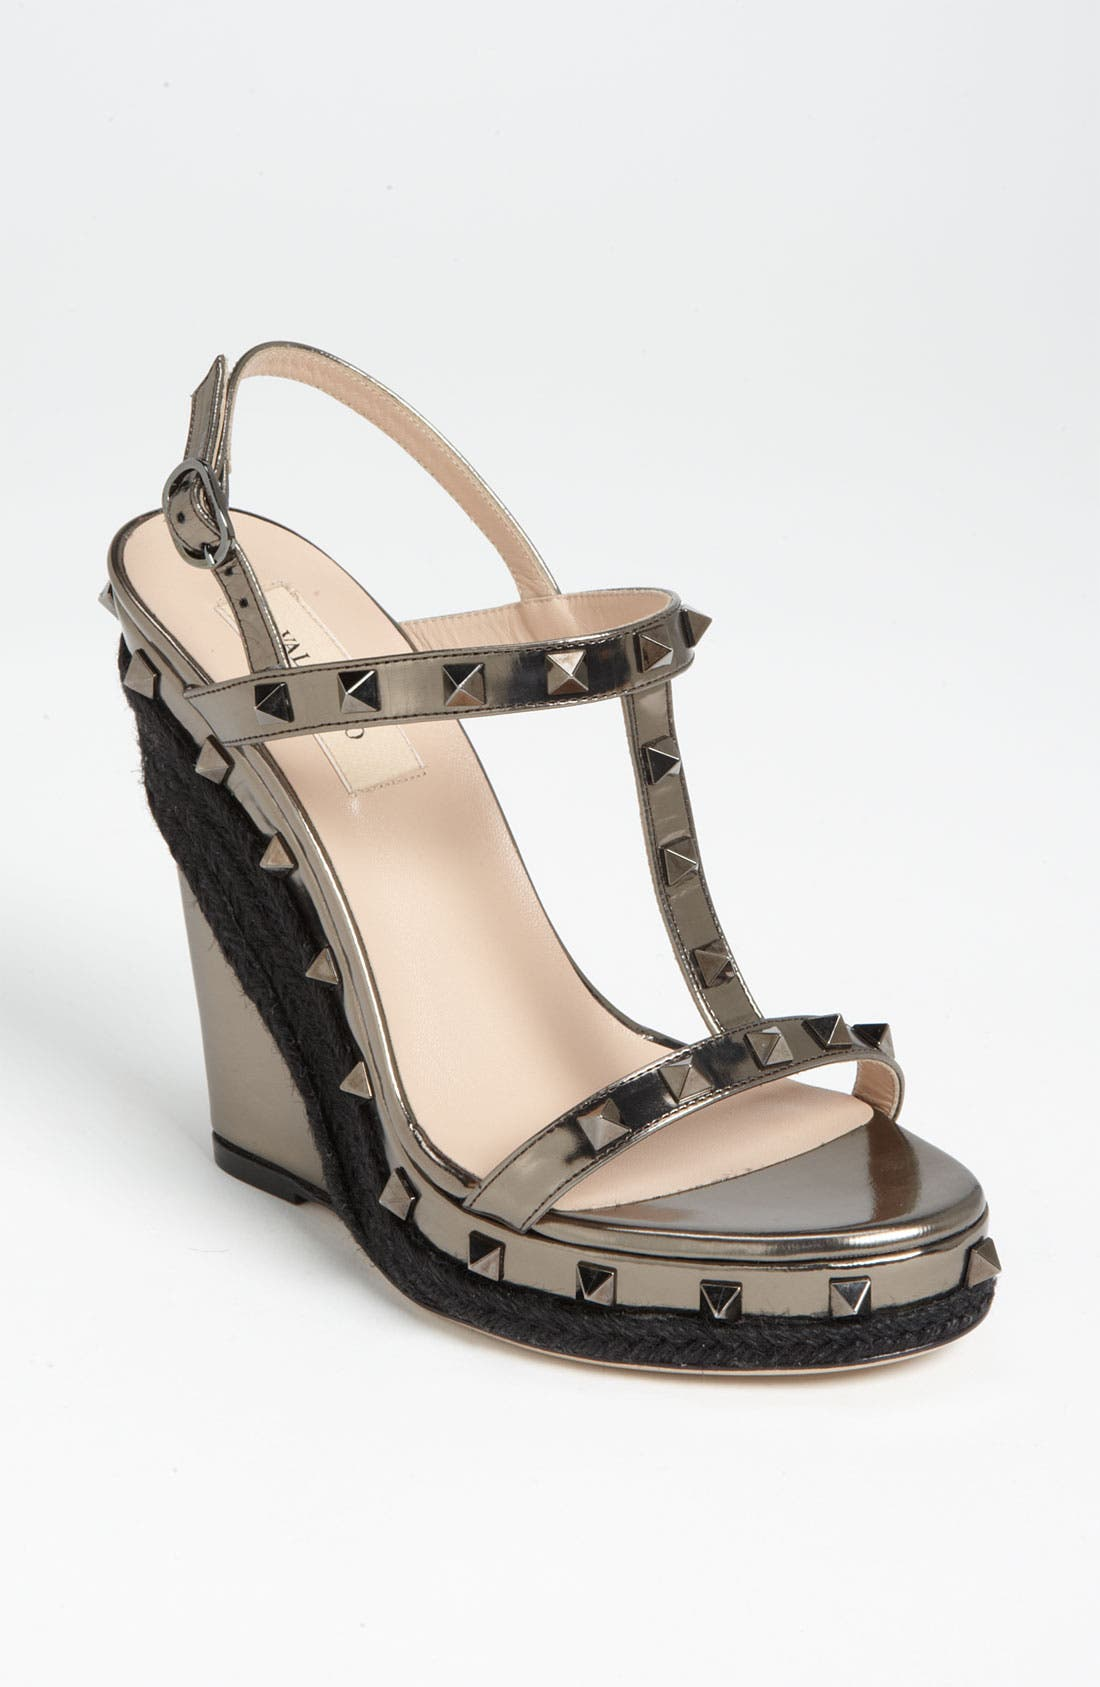 'Rockstud' Wedge Sandal,                             Main thumbnail 1, color,                             220